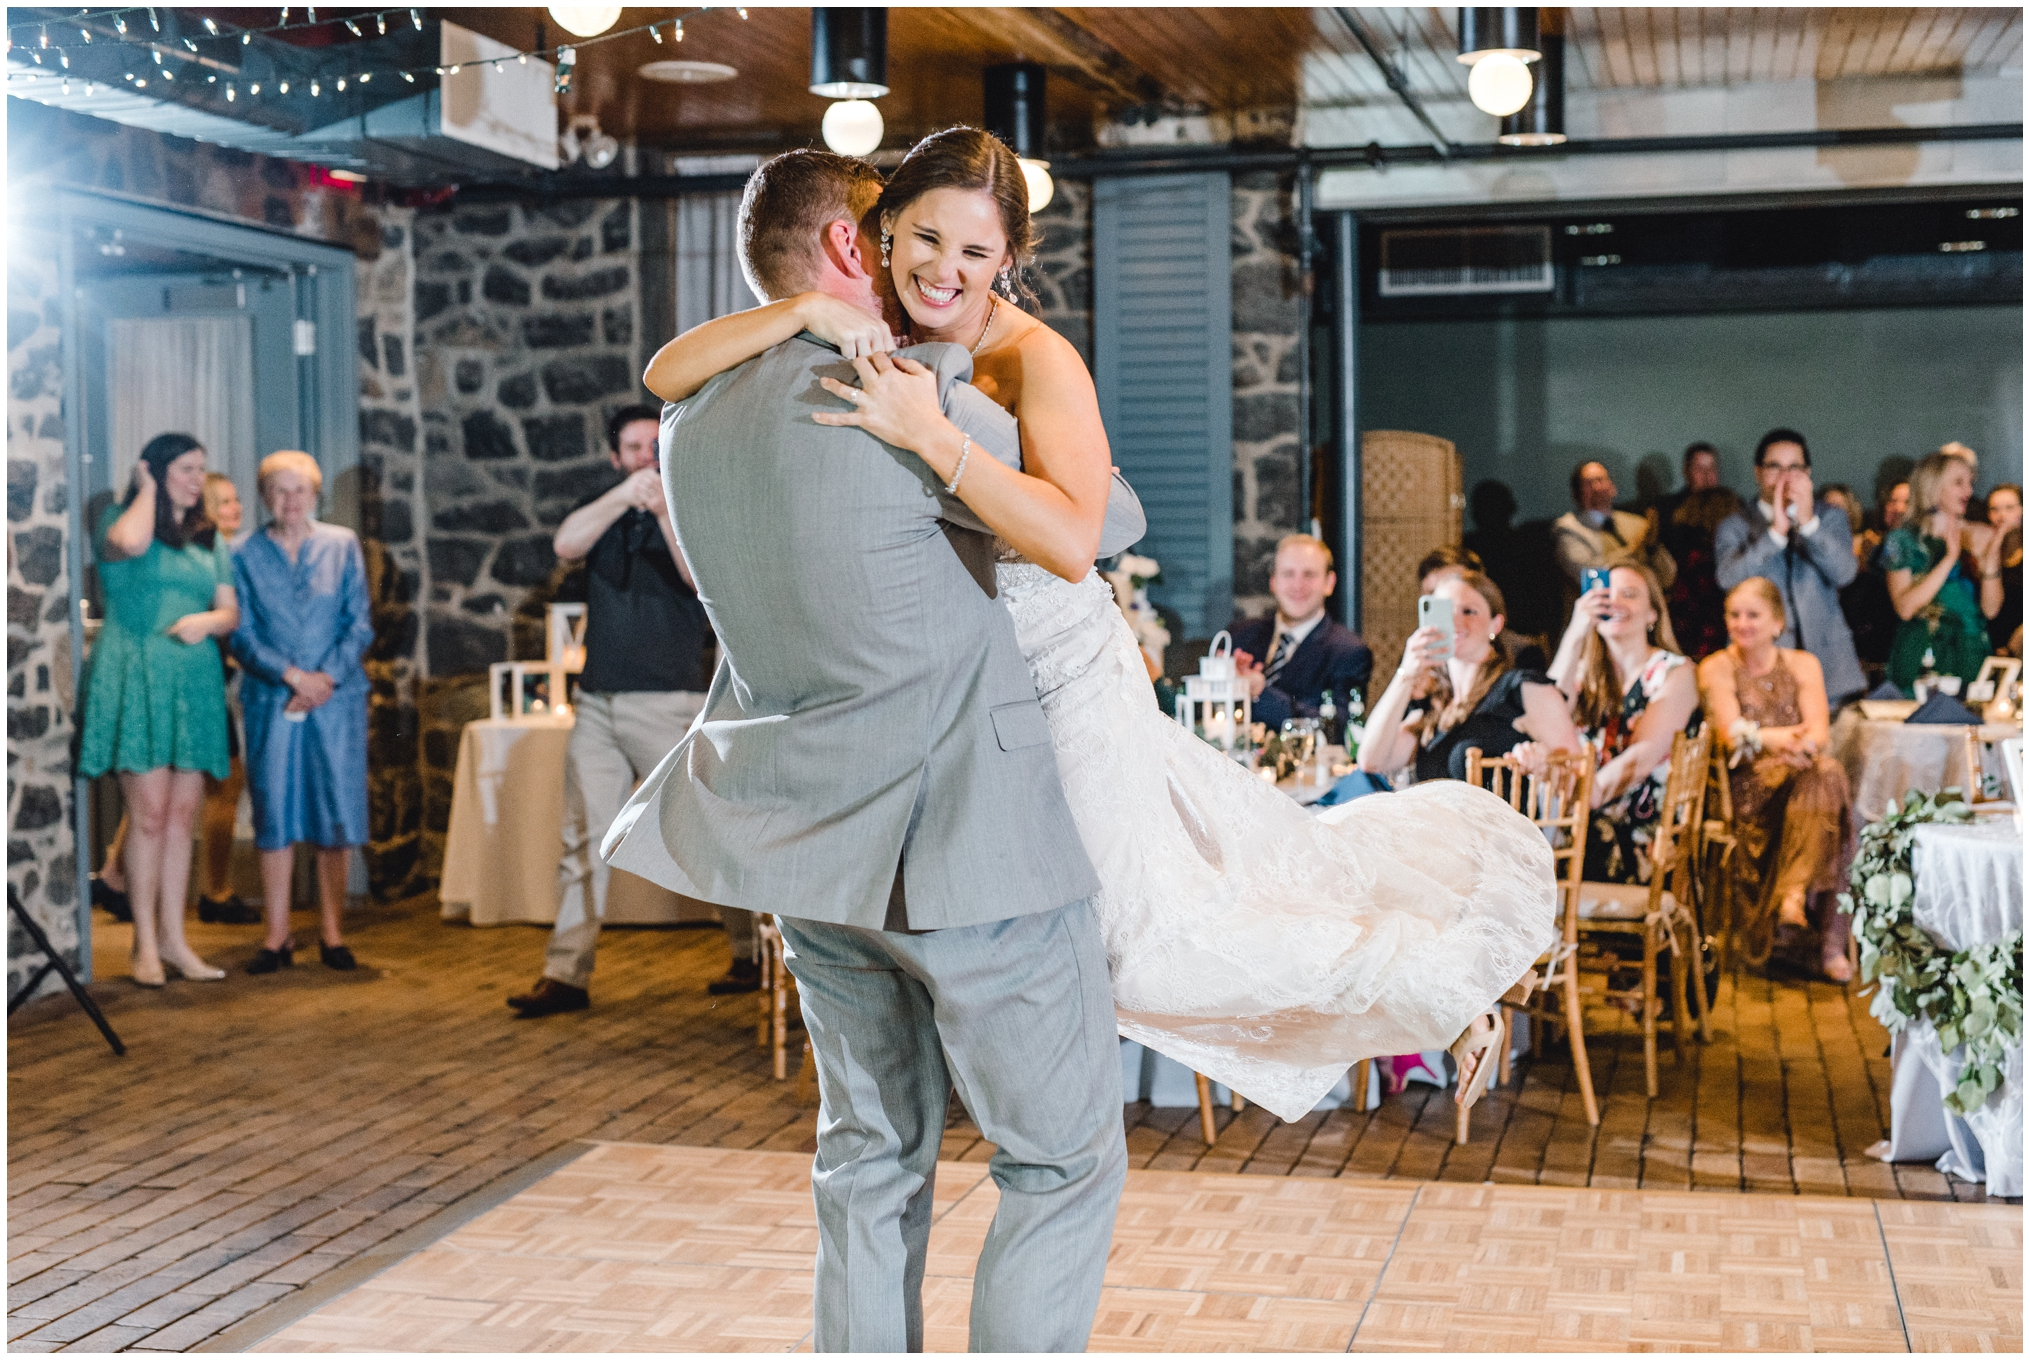 Krista Brackin Photography | April Wedding at The Carriage House at Rockwood Park_0108.jpg